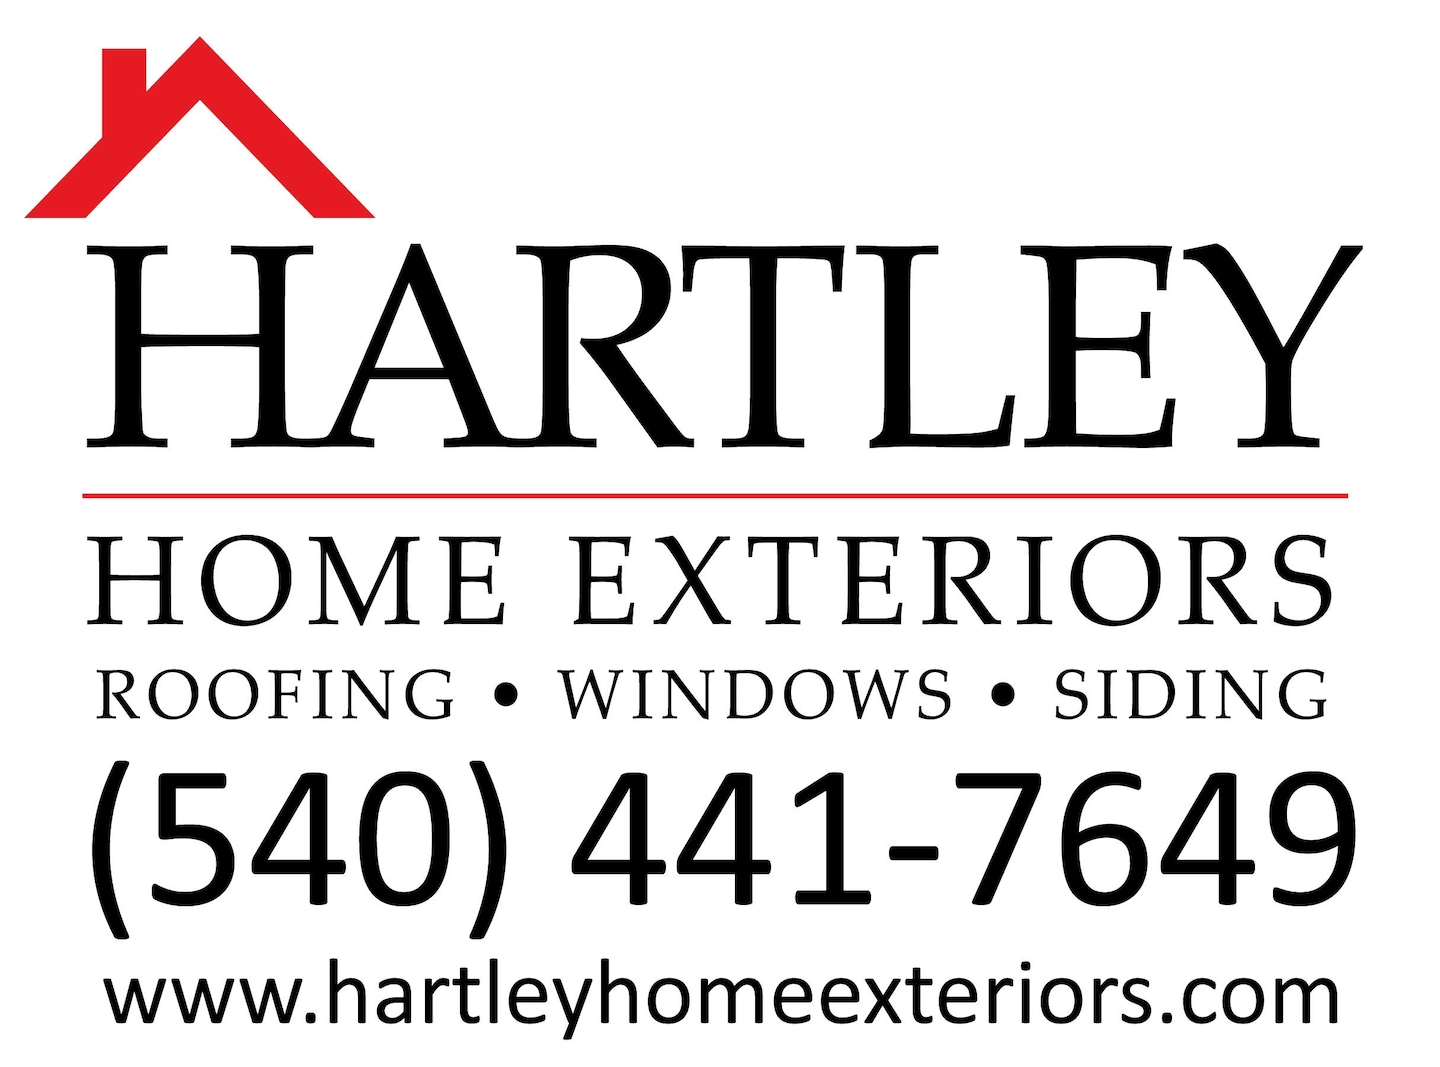 Hartley Home Exteriors